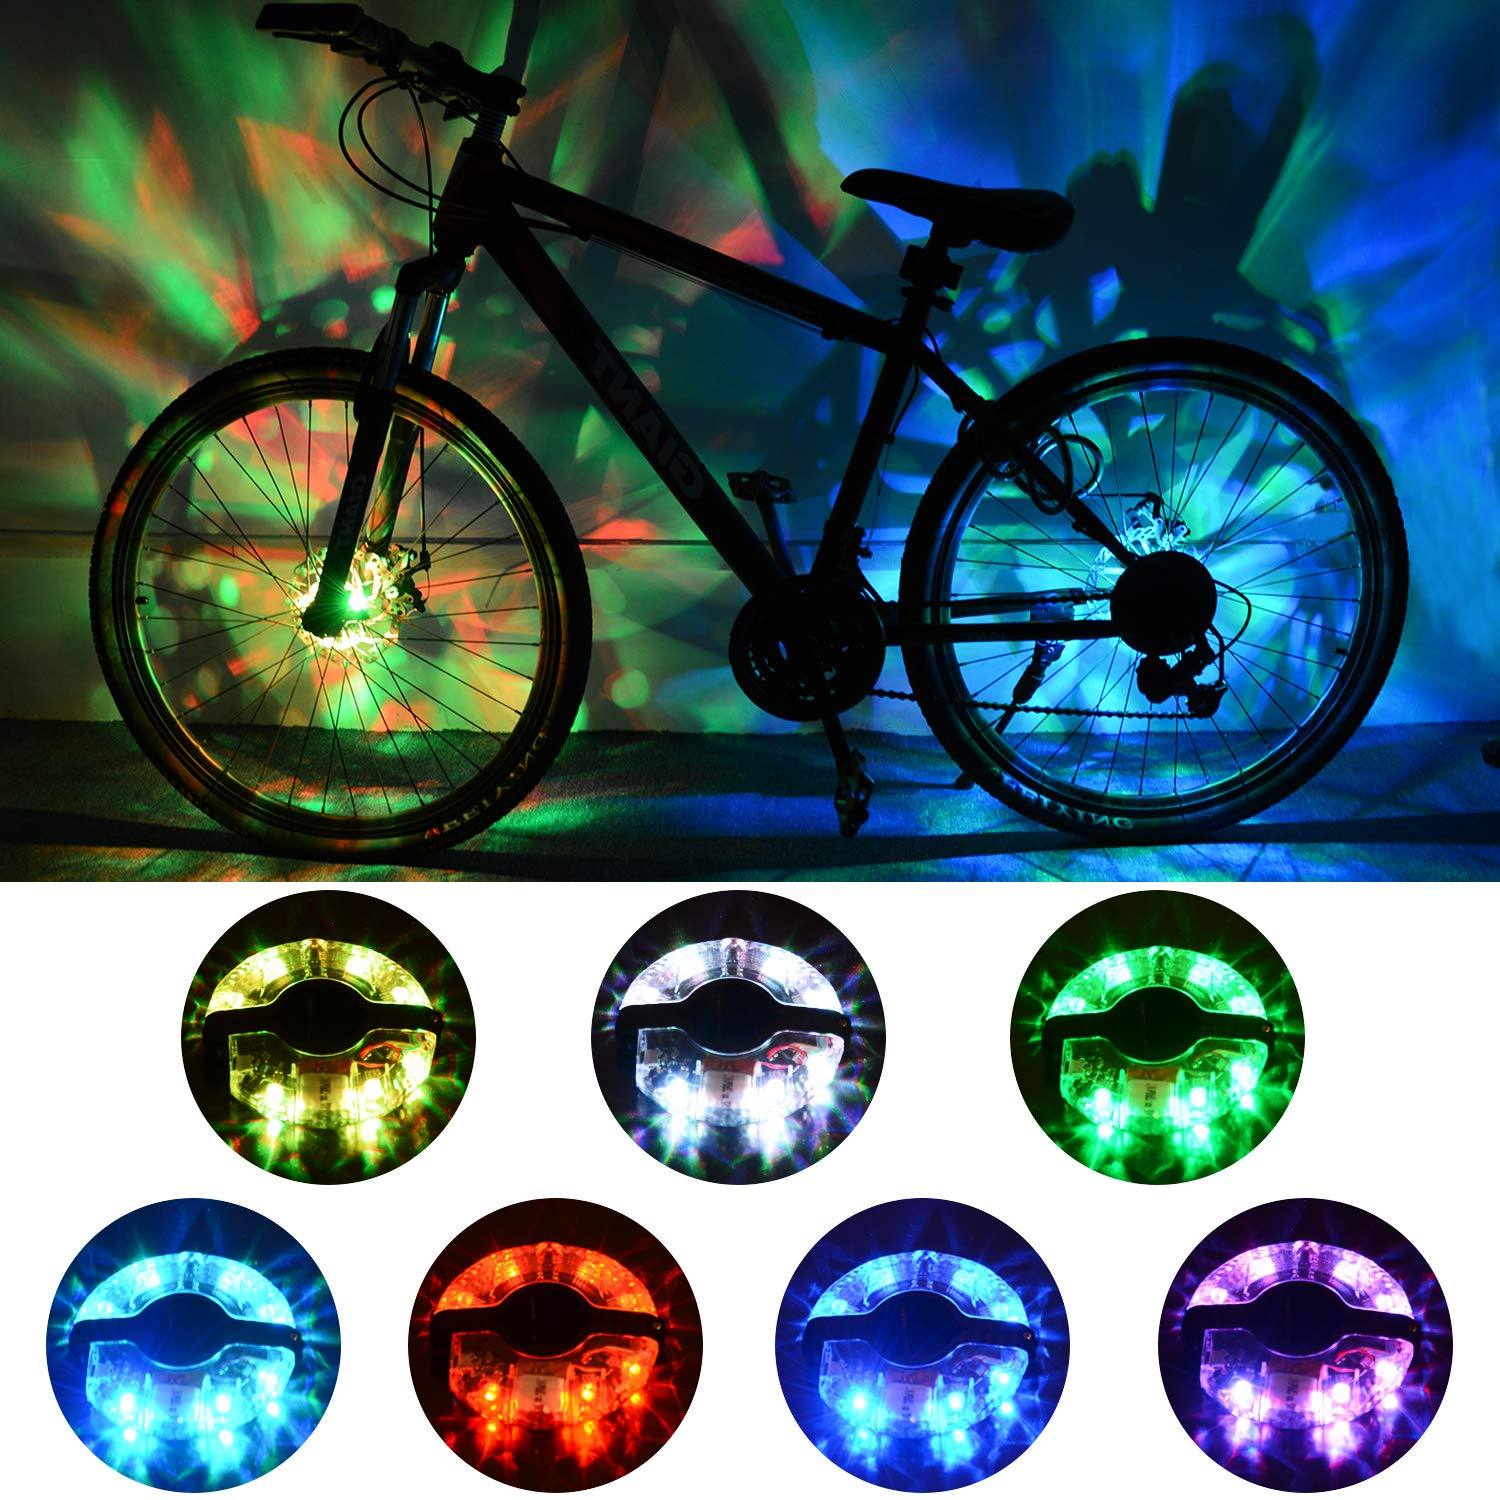 ShinePick Rechargeable Bike Wheel Lights, Waterproof Rim Lights Colorful Safety Warning Light Bike Spoke Decoration, 2 Tire Pack for Both Adults Kids Bike